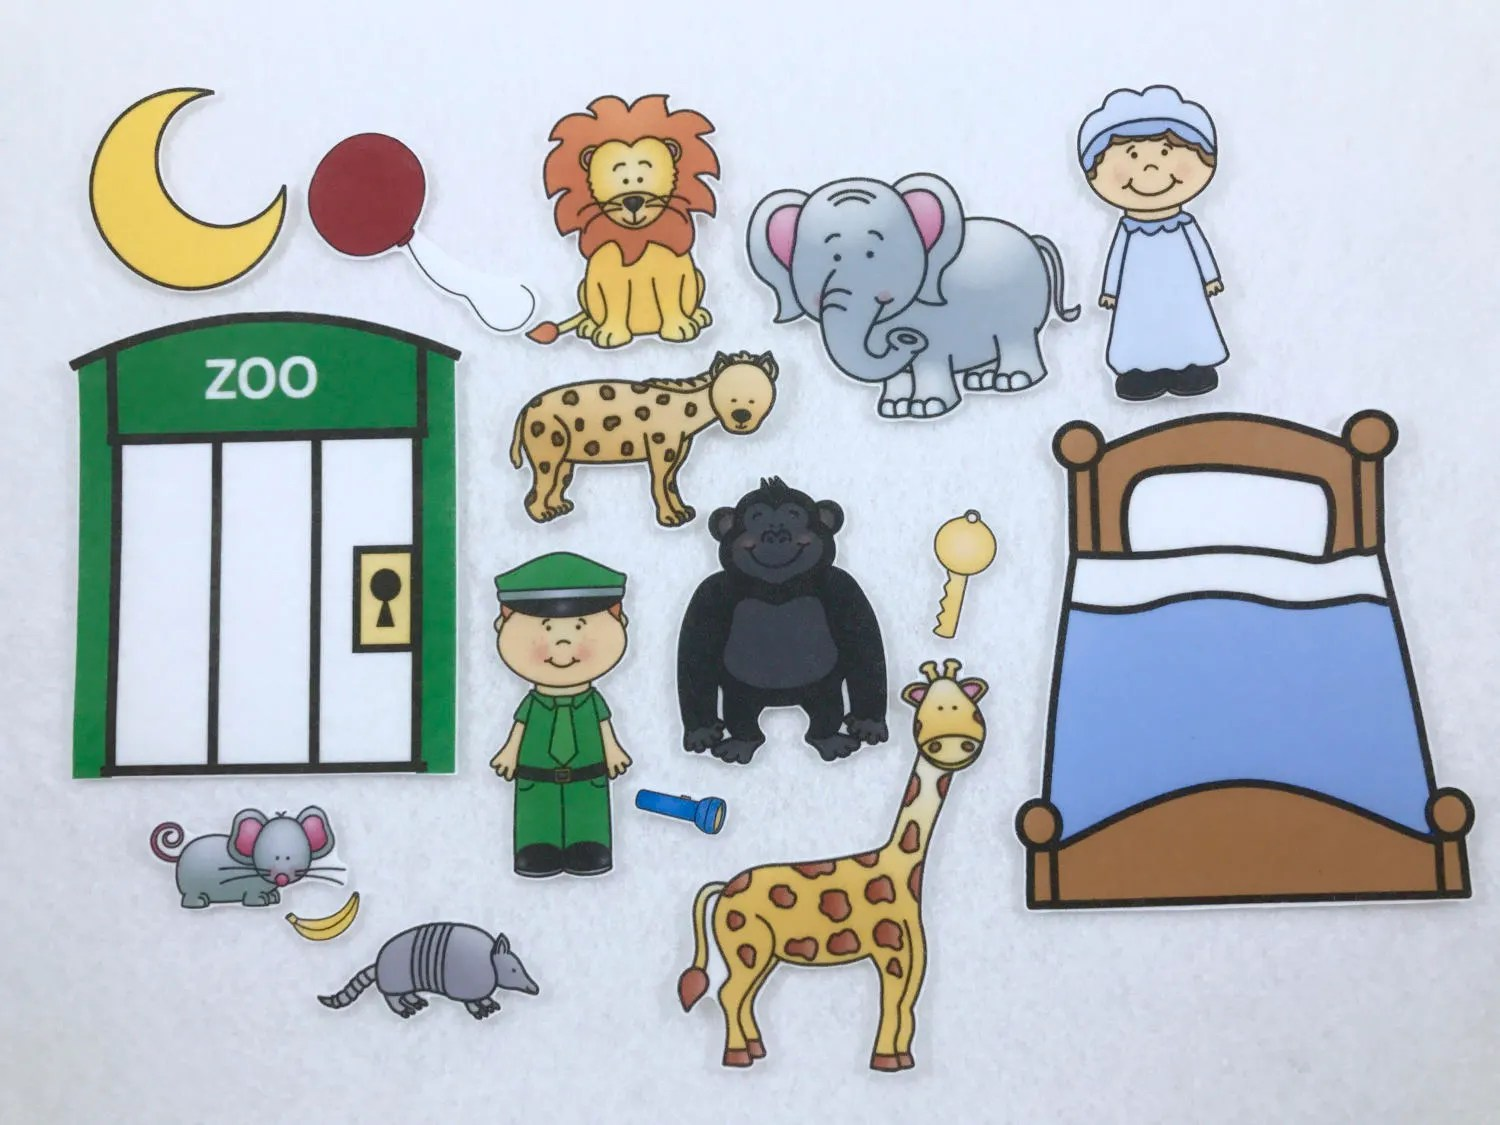 Gorilla And Zoo Friends Goodnight Felt Board Story Speech